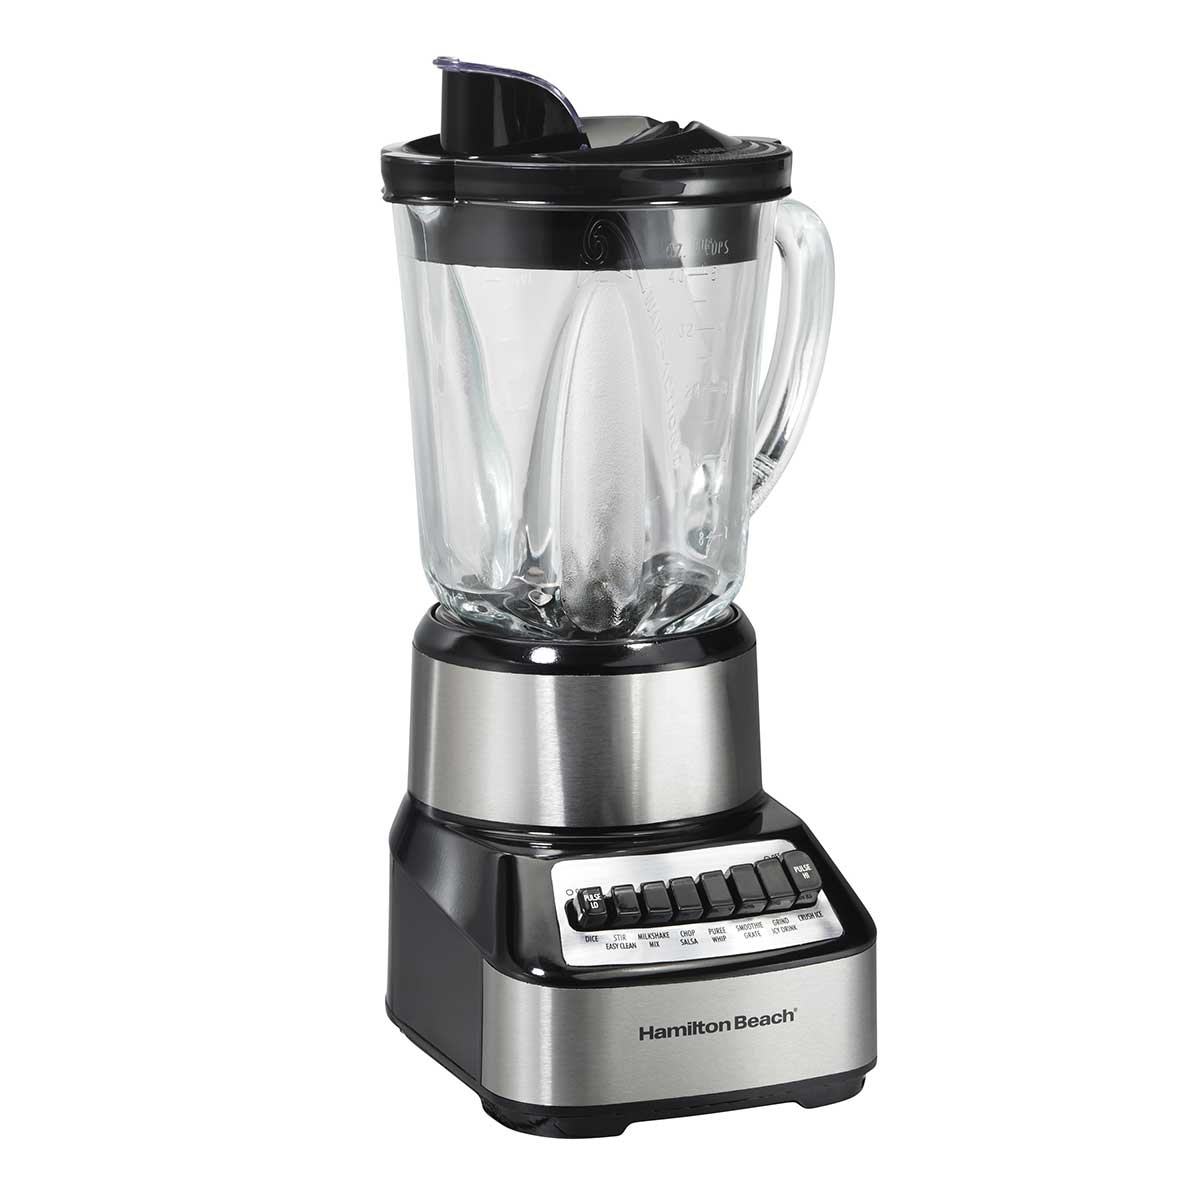 Wave Crusher® Multi-Function Blender with Mess-free 40oz Glass Jar, 700W Black & Stainless (54221)